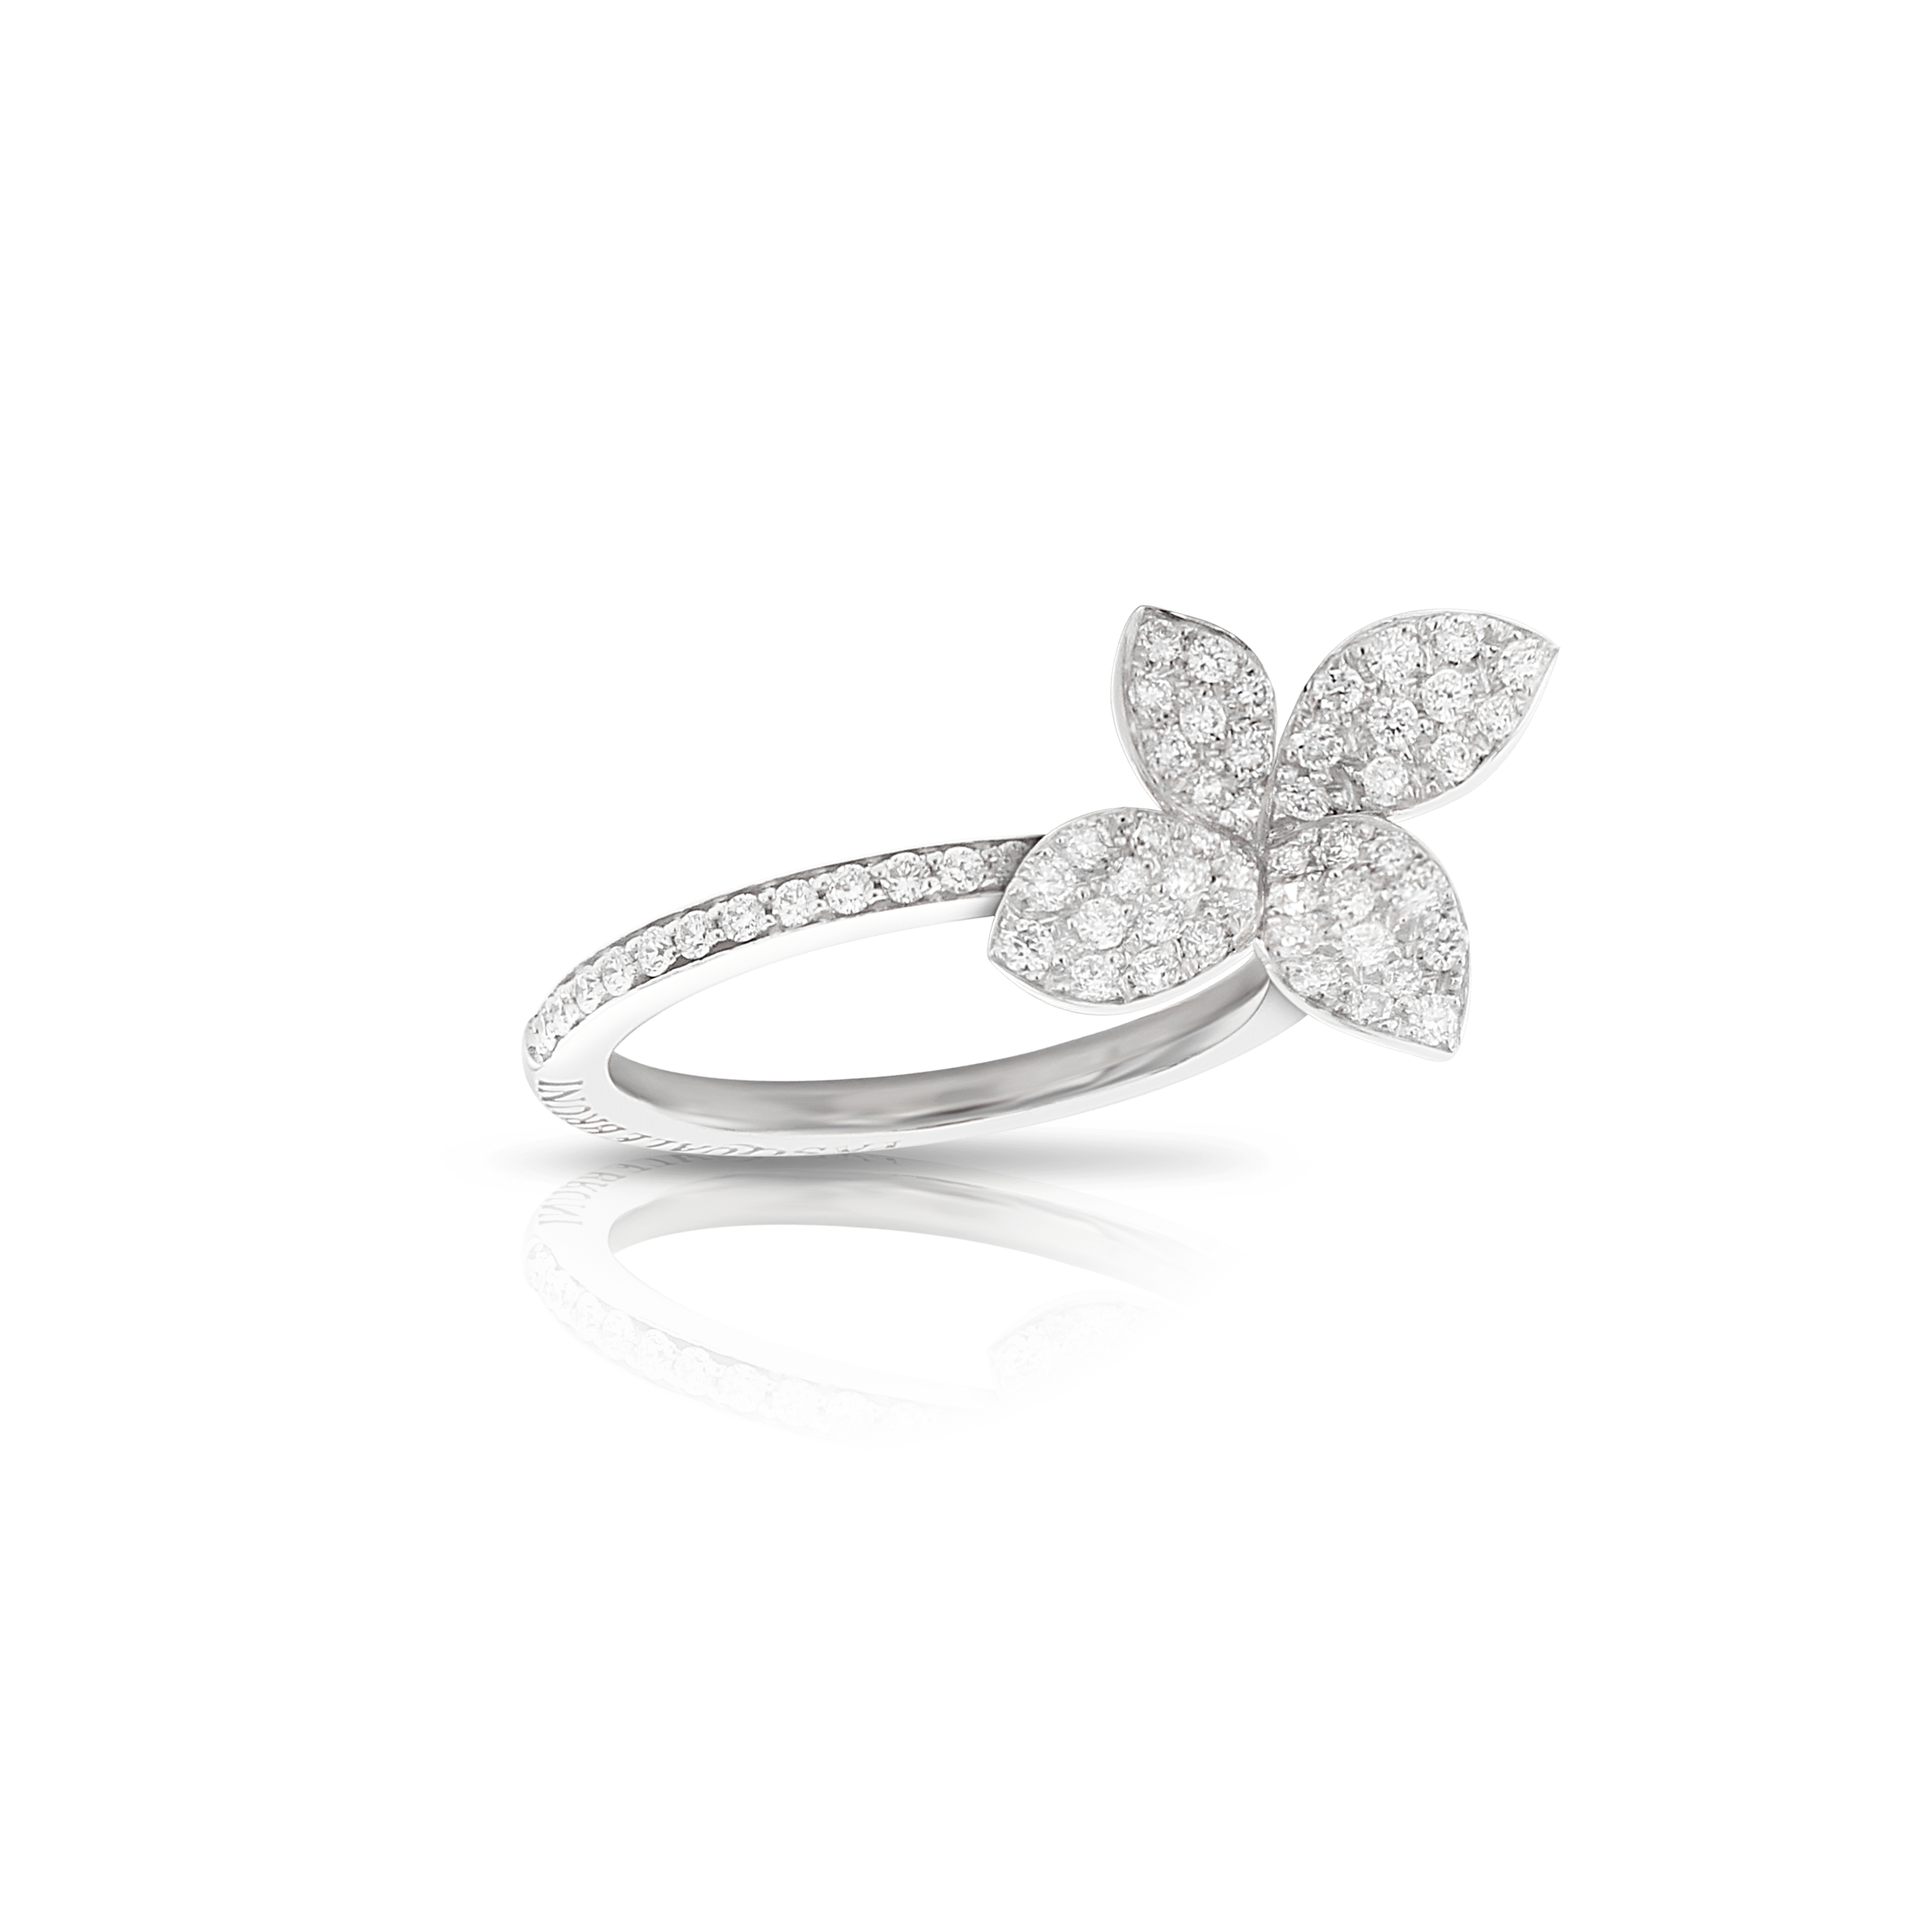 18k White Gold Petit Garden Ring with Diamonds - Small Flower